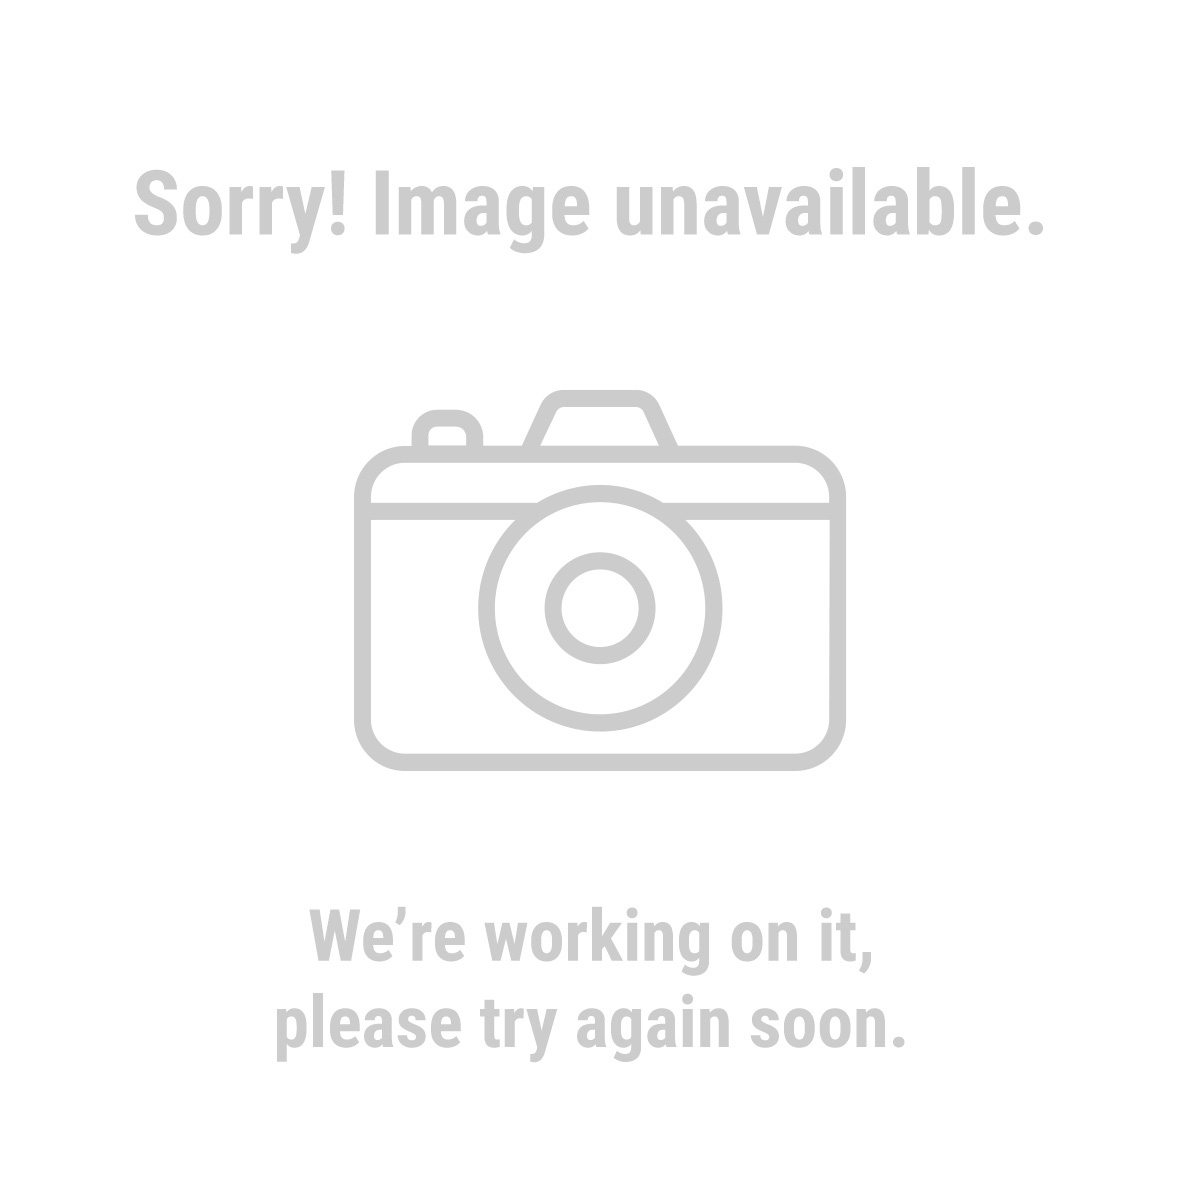 Chicago Electric Welding 62544 0.030 in. E71T-GS Flux Core Welding Wire, 2 lb. Roll